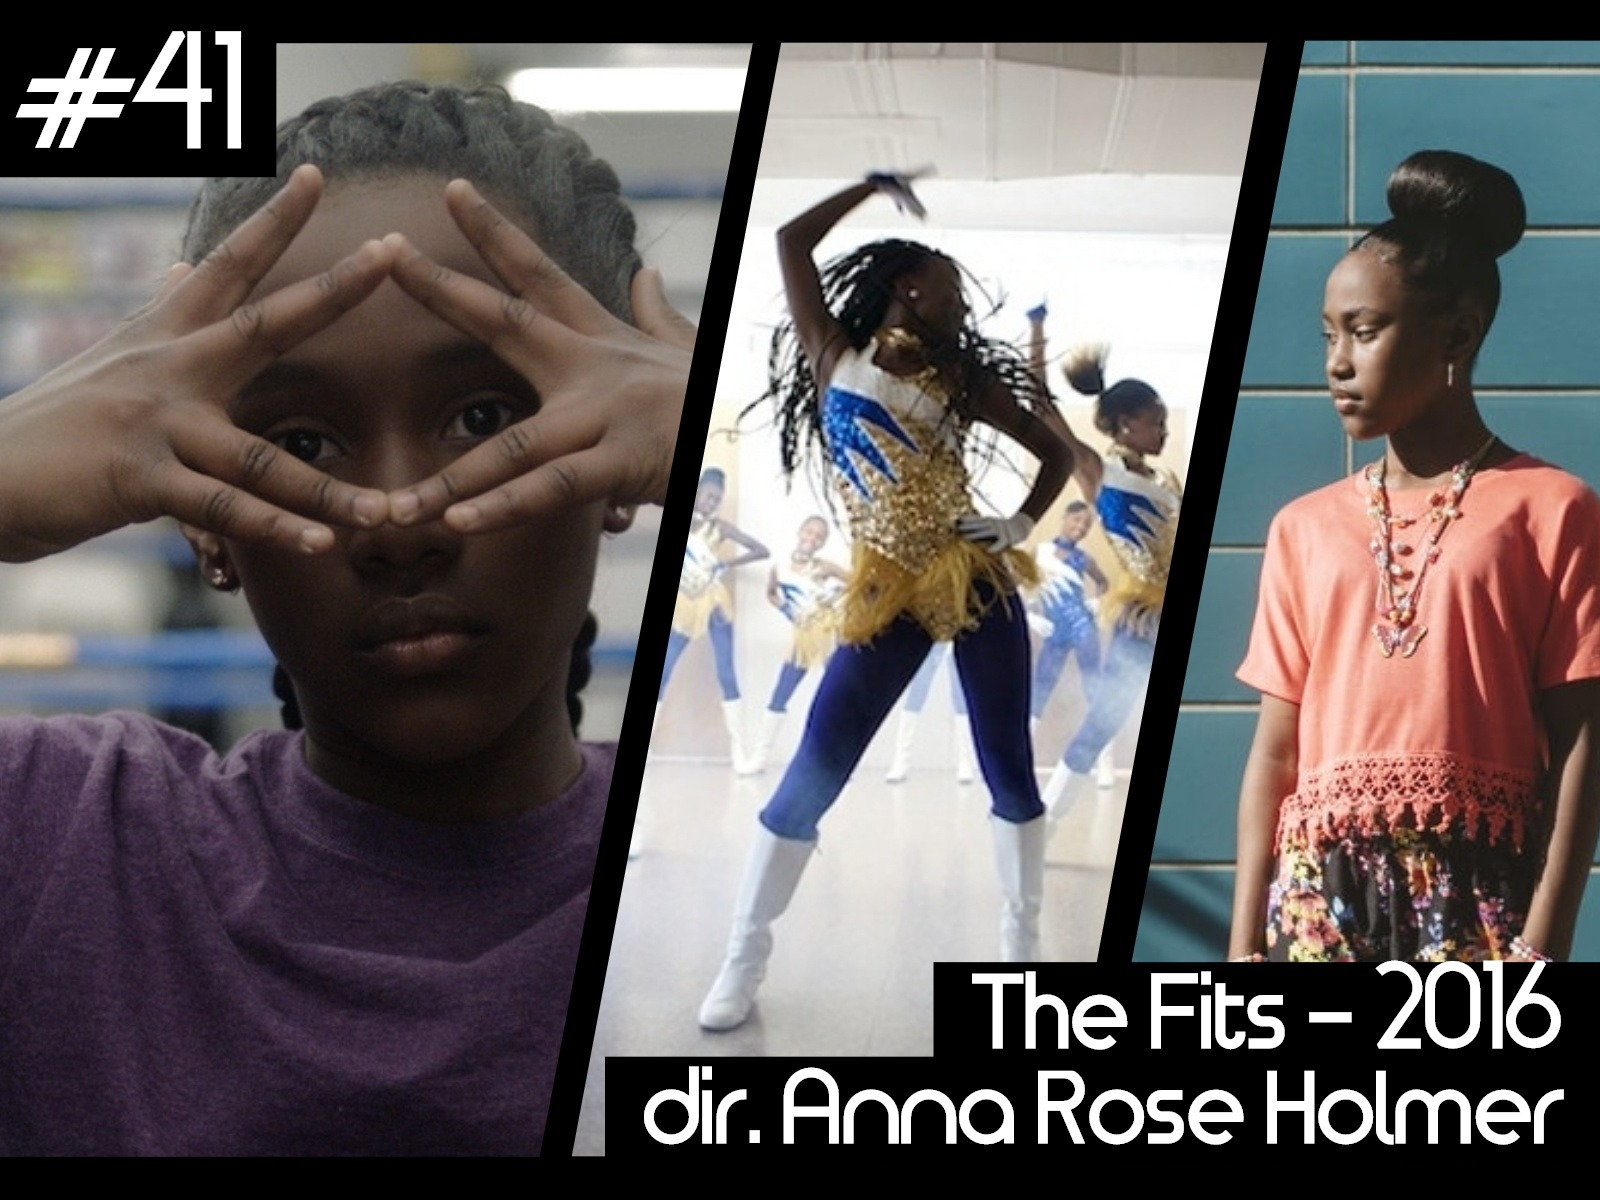 41 - the fits.jpg